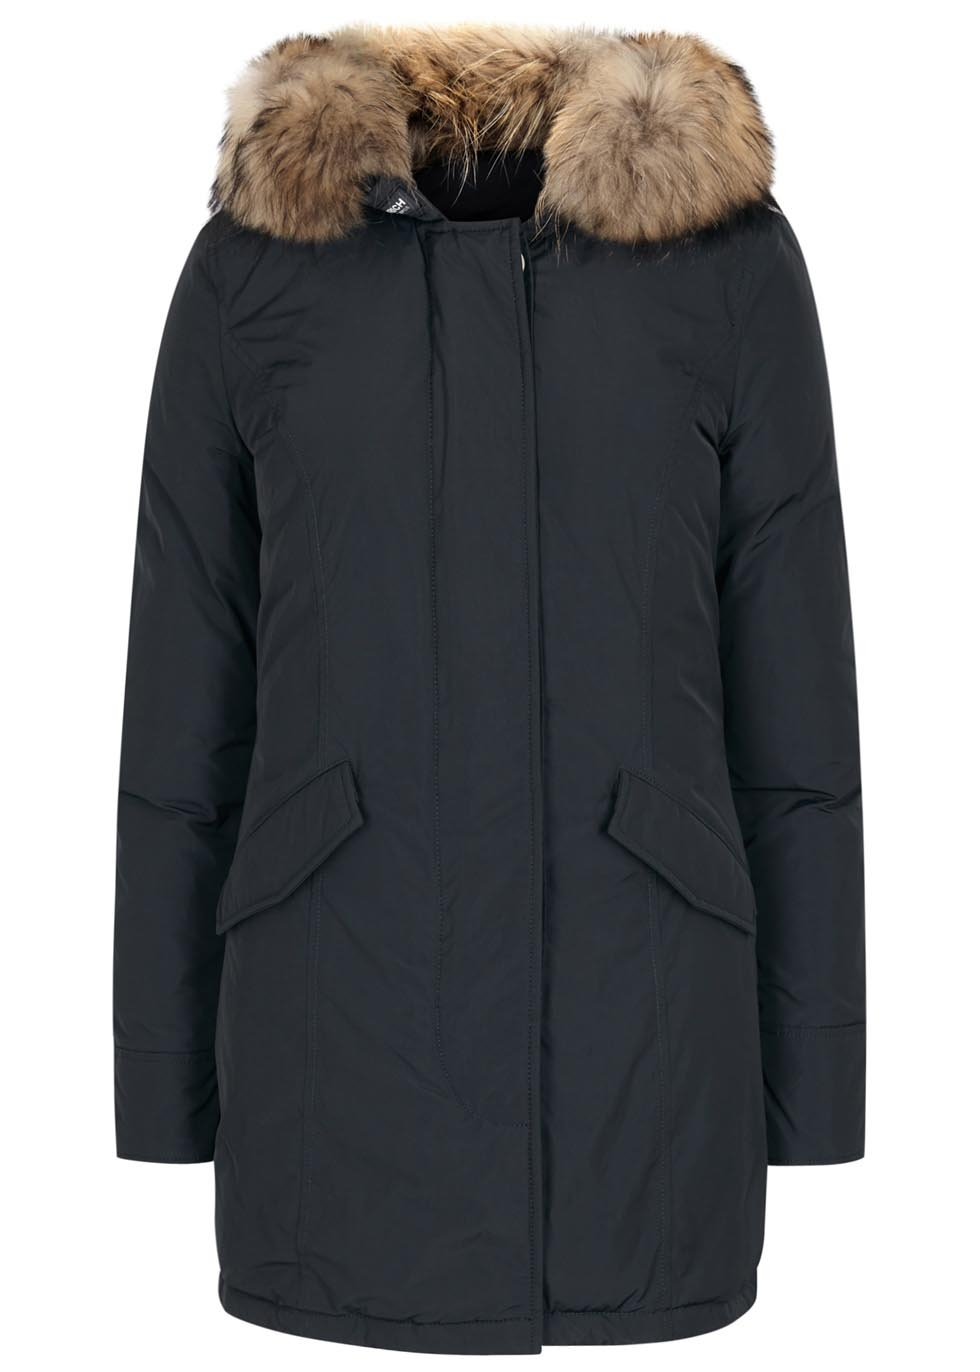 Woolrich luxury arctic navy fur-trimmed parka- £630 from Harvey Nichols.jpg